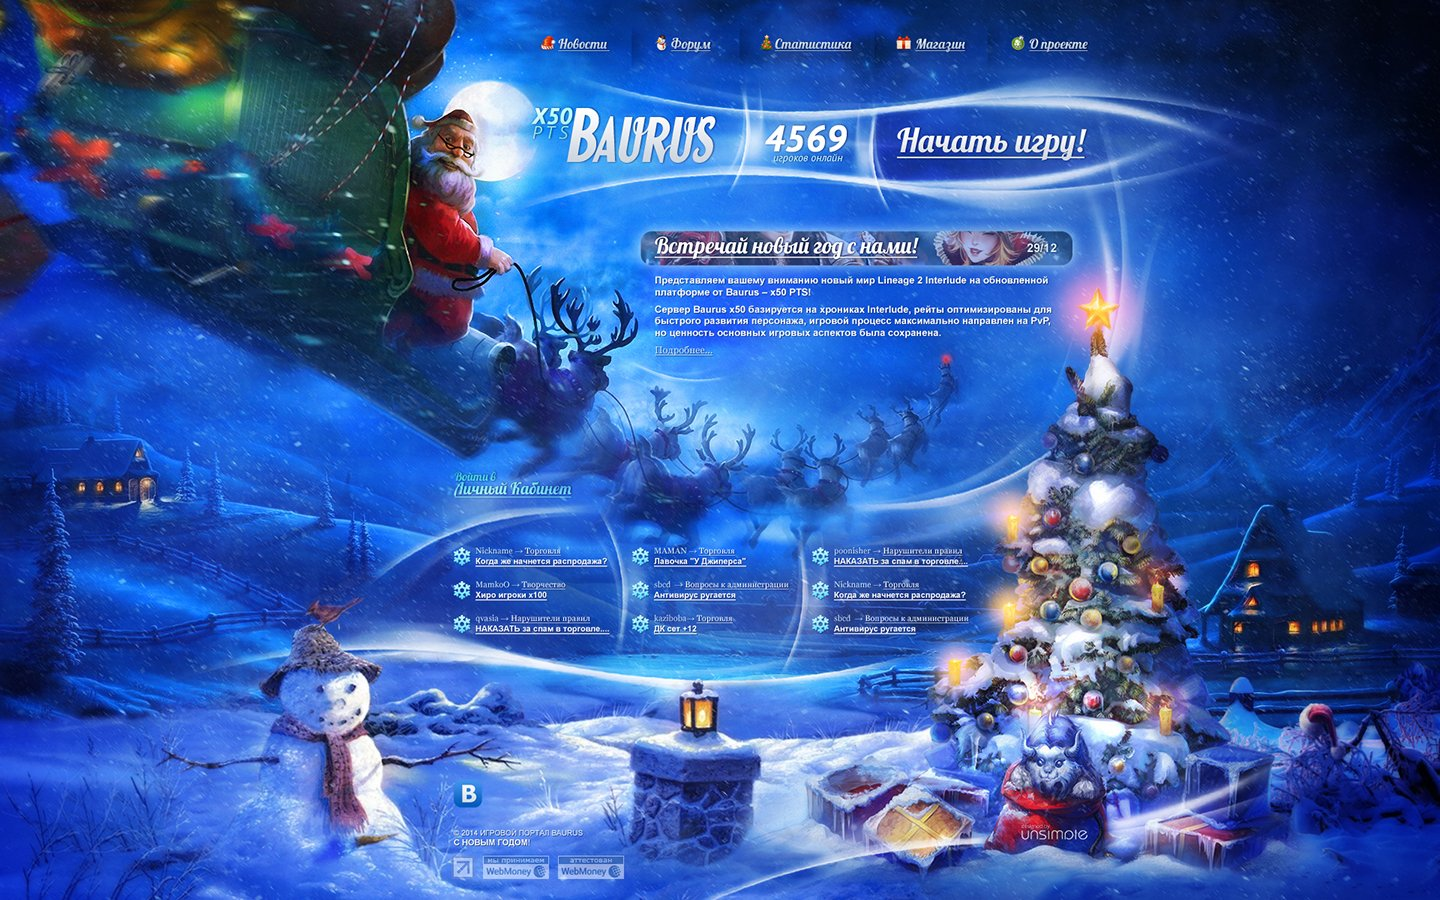 Baurus > Website design for Lineage 2 private server. Main page, winter